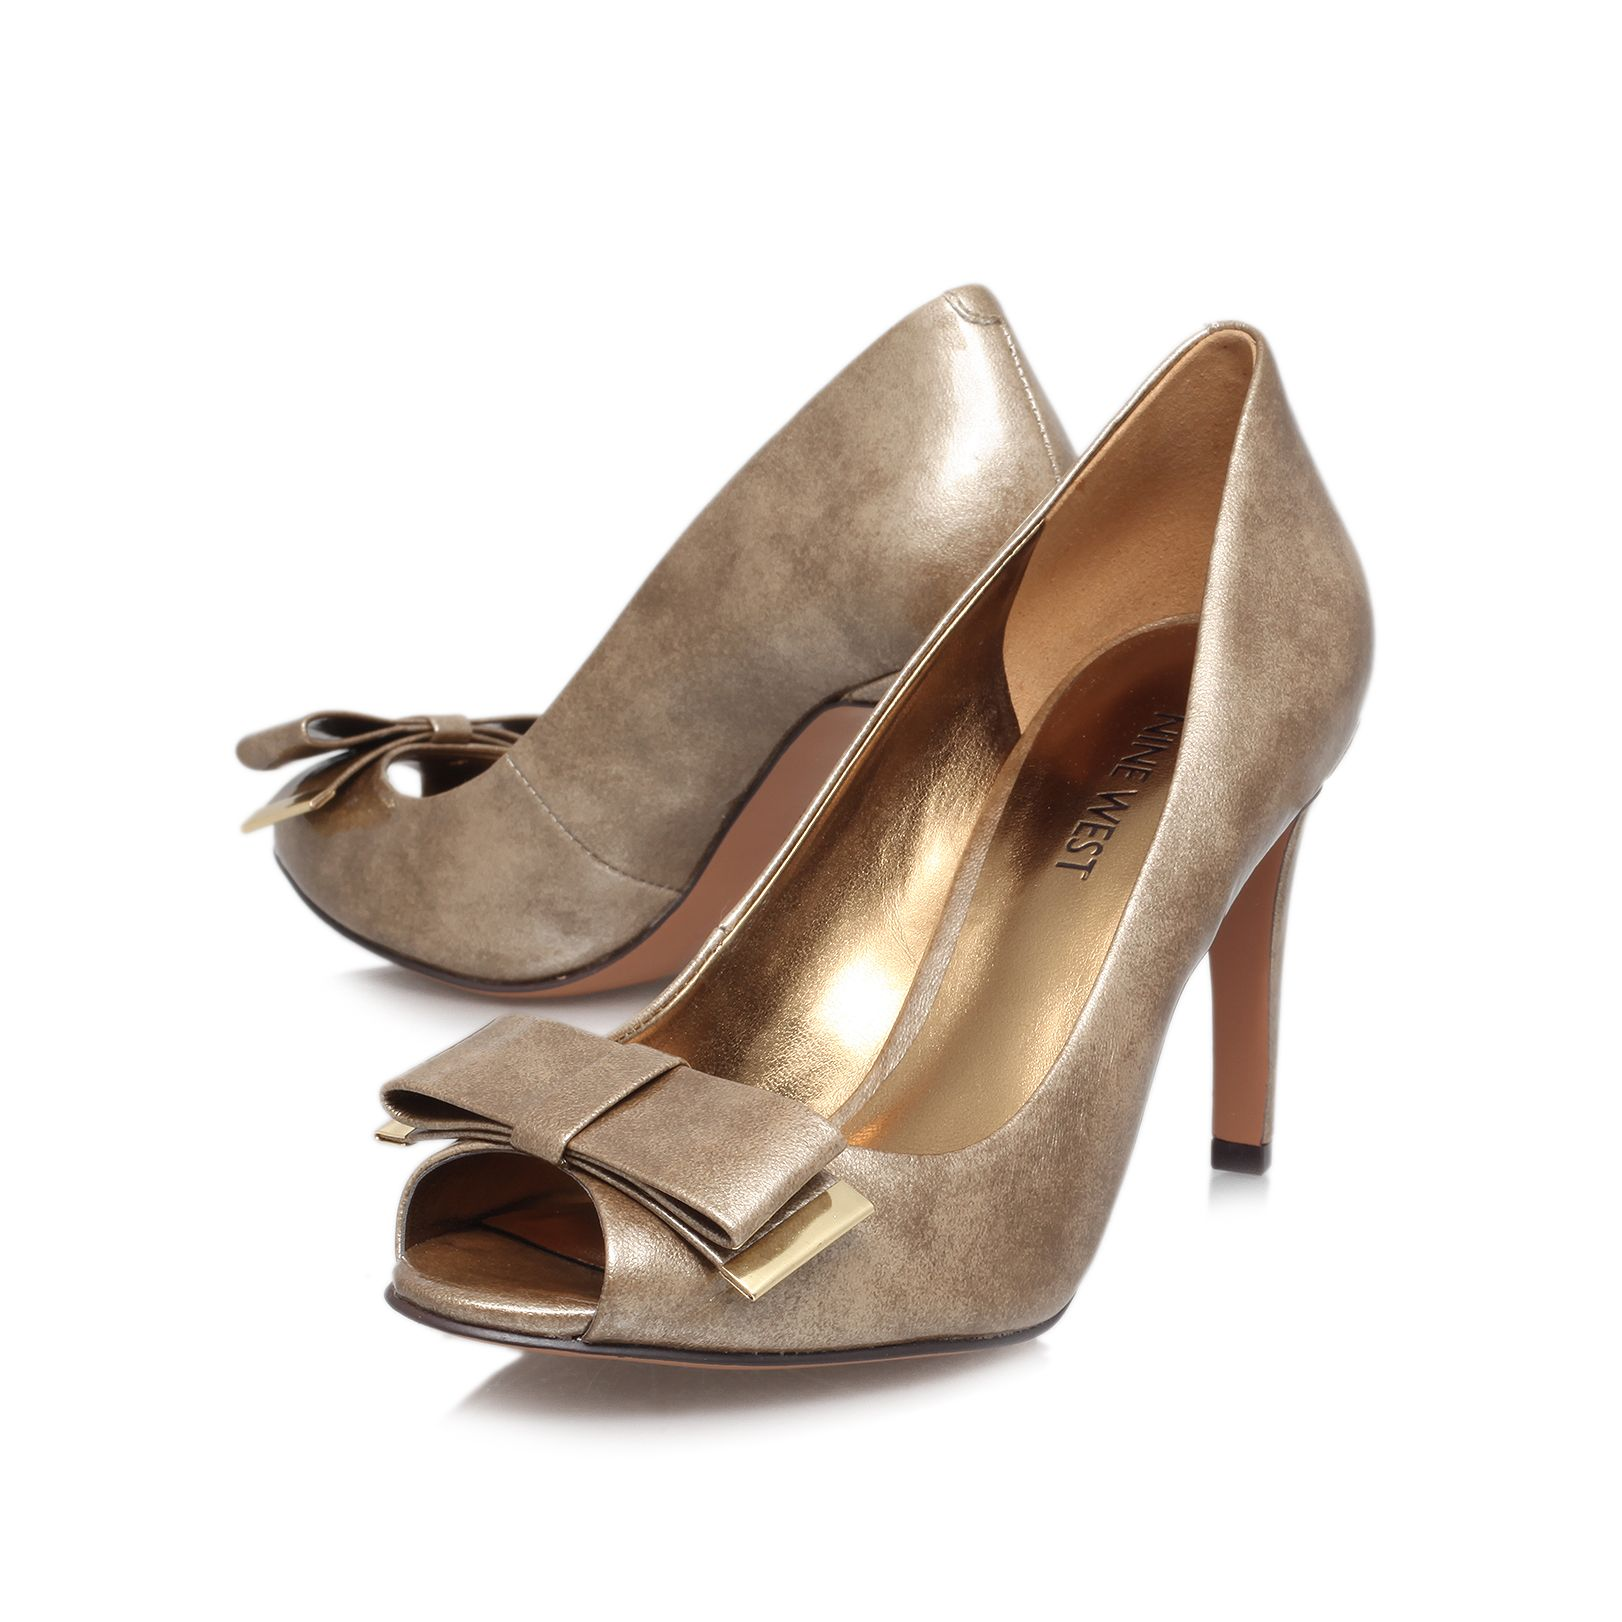 Dhara3 high heeled court shoes